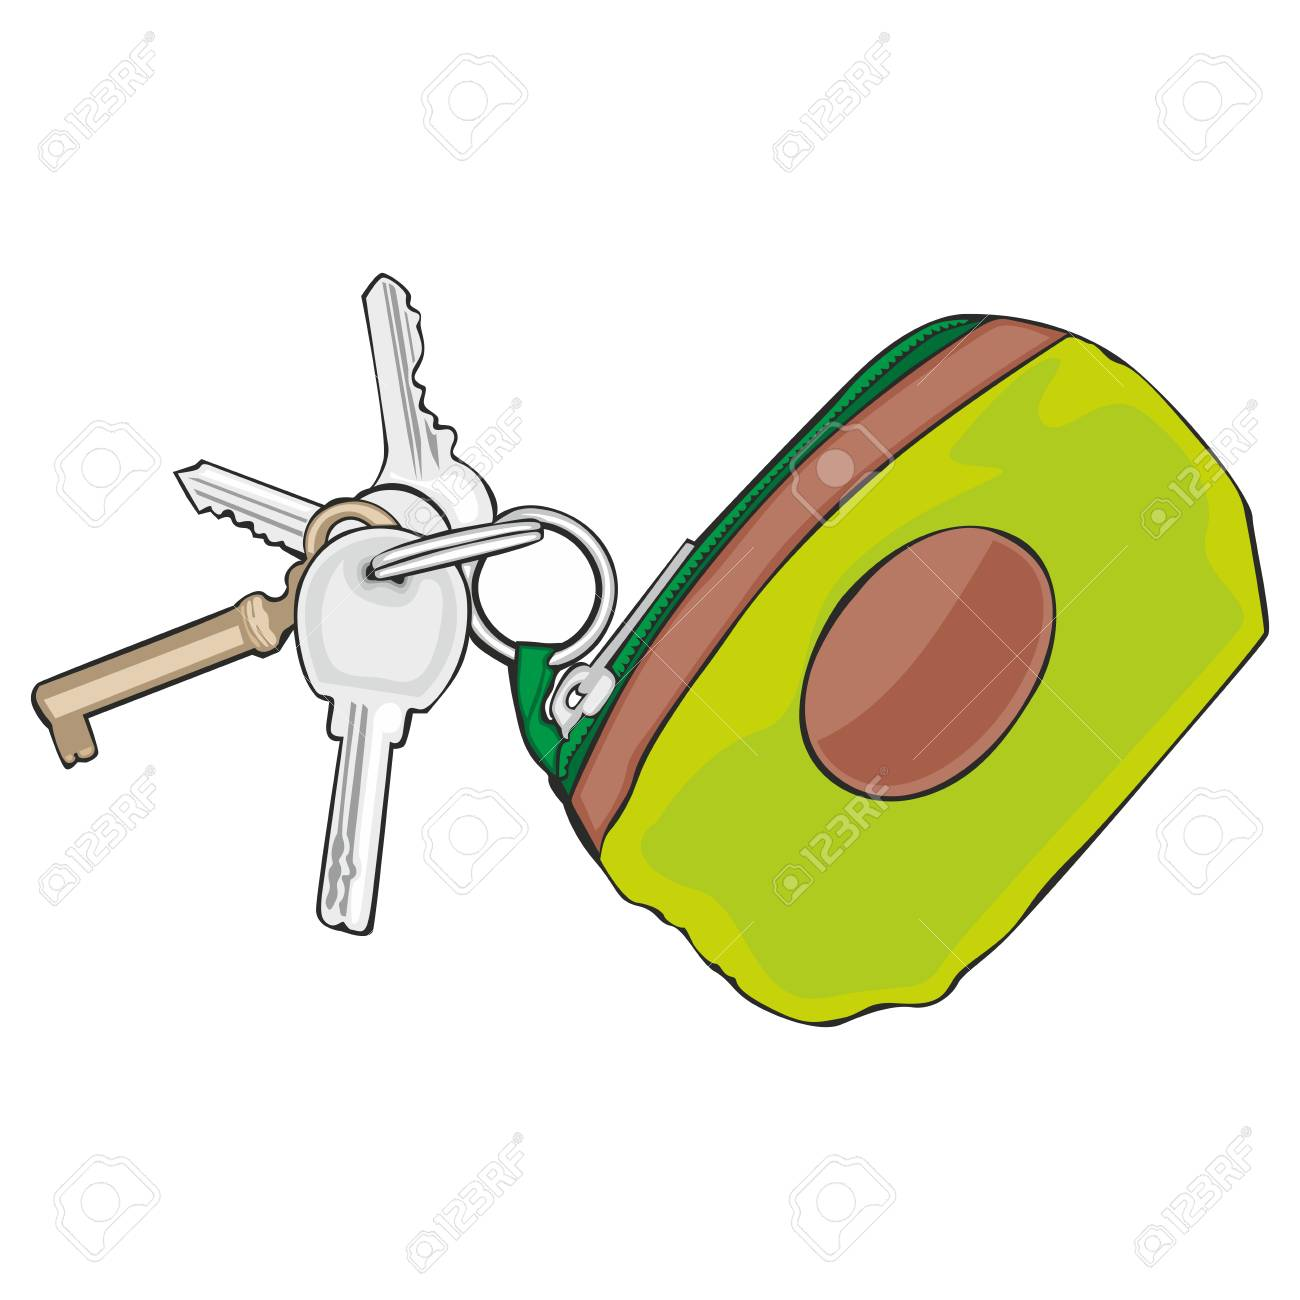 fully editable vector illustration of isolated colored keyholder with keys Stock Vector - 8143230